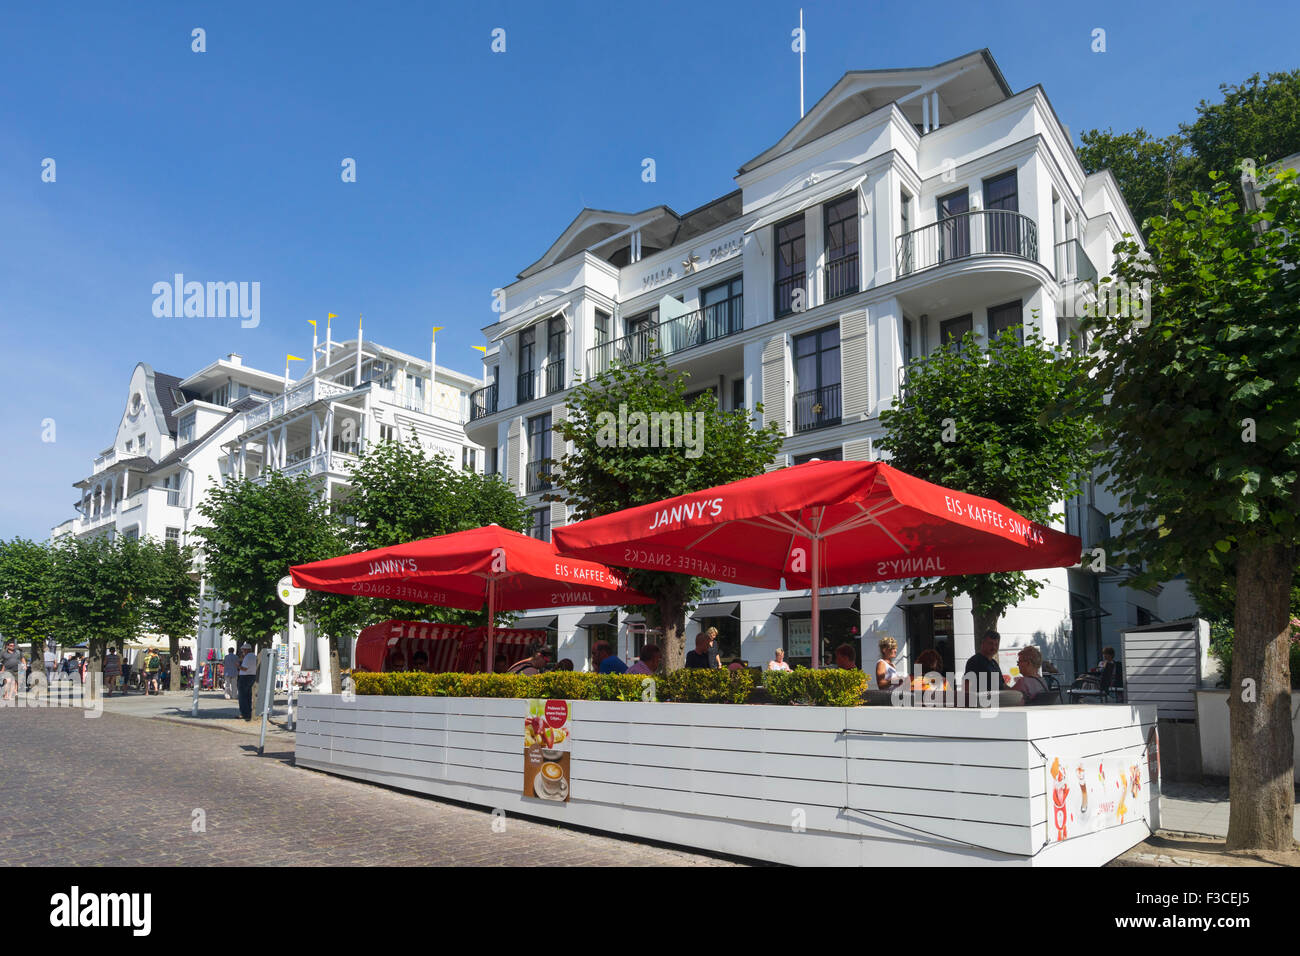 Rugen island stock photos rugen island stock images alamy for Villa sellin rugen